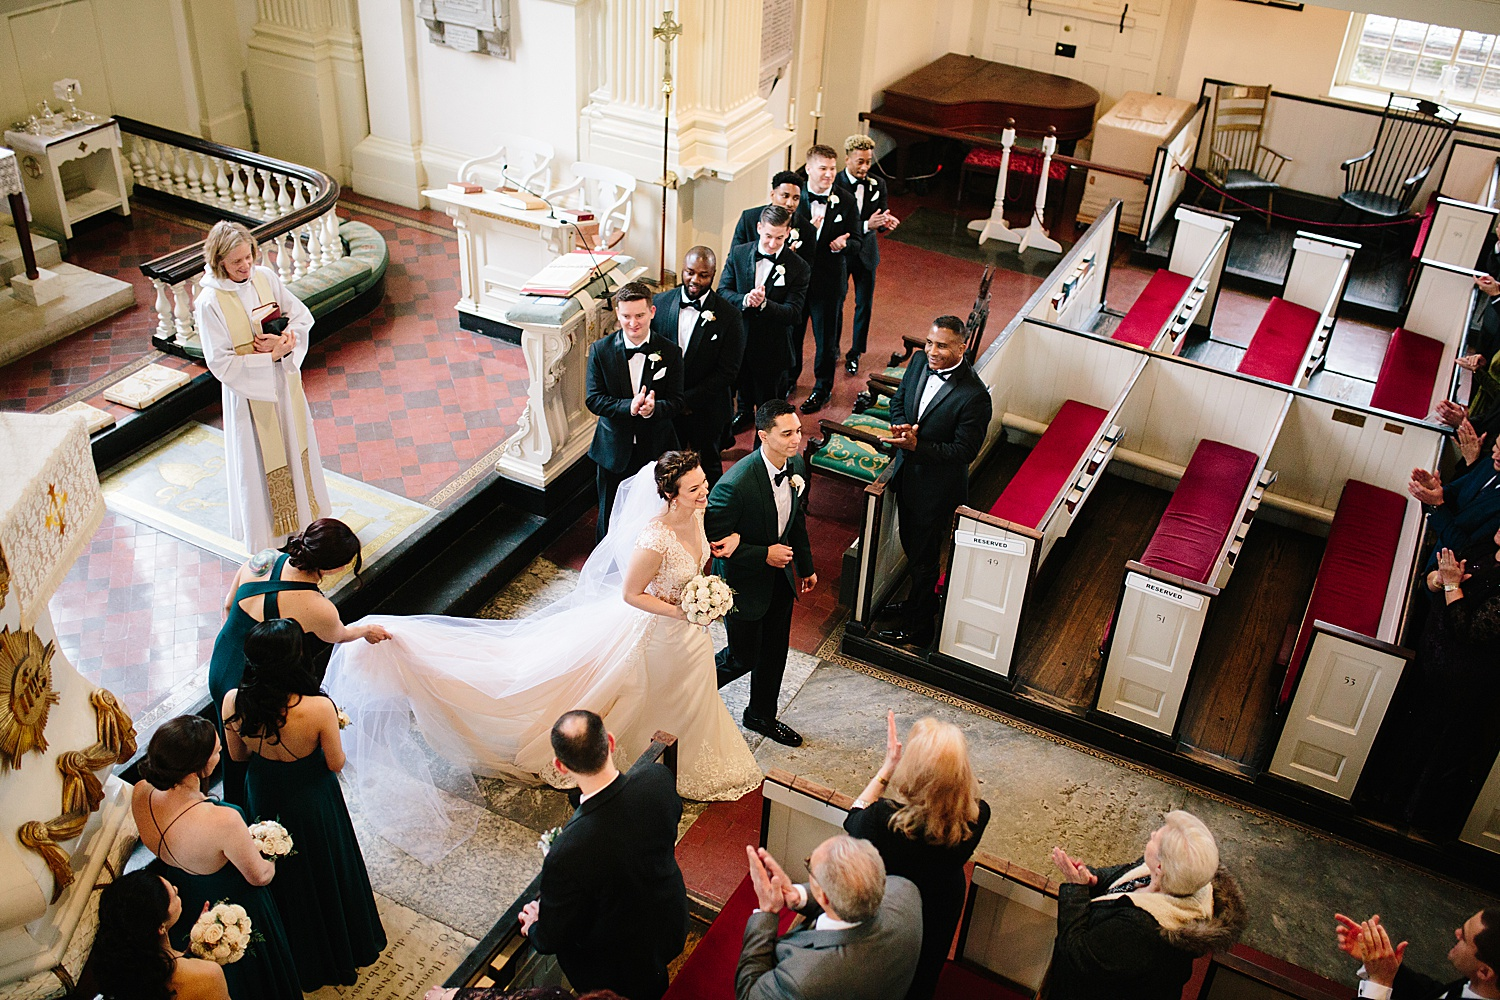 kirstentony_uniontrust_finleycatering_christchurch_philadelphia_wedding_image_0717.jpg